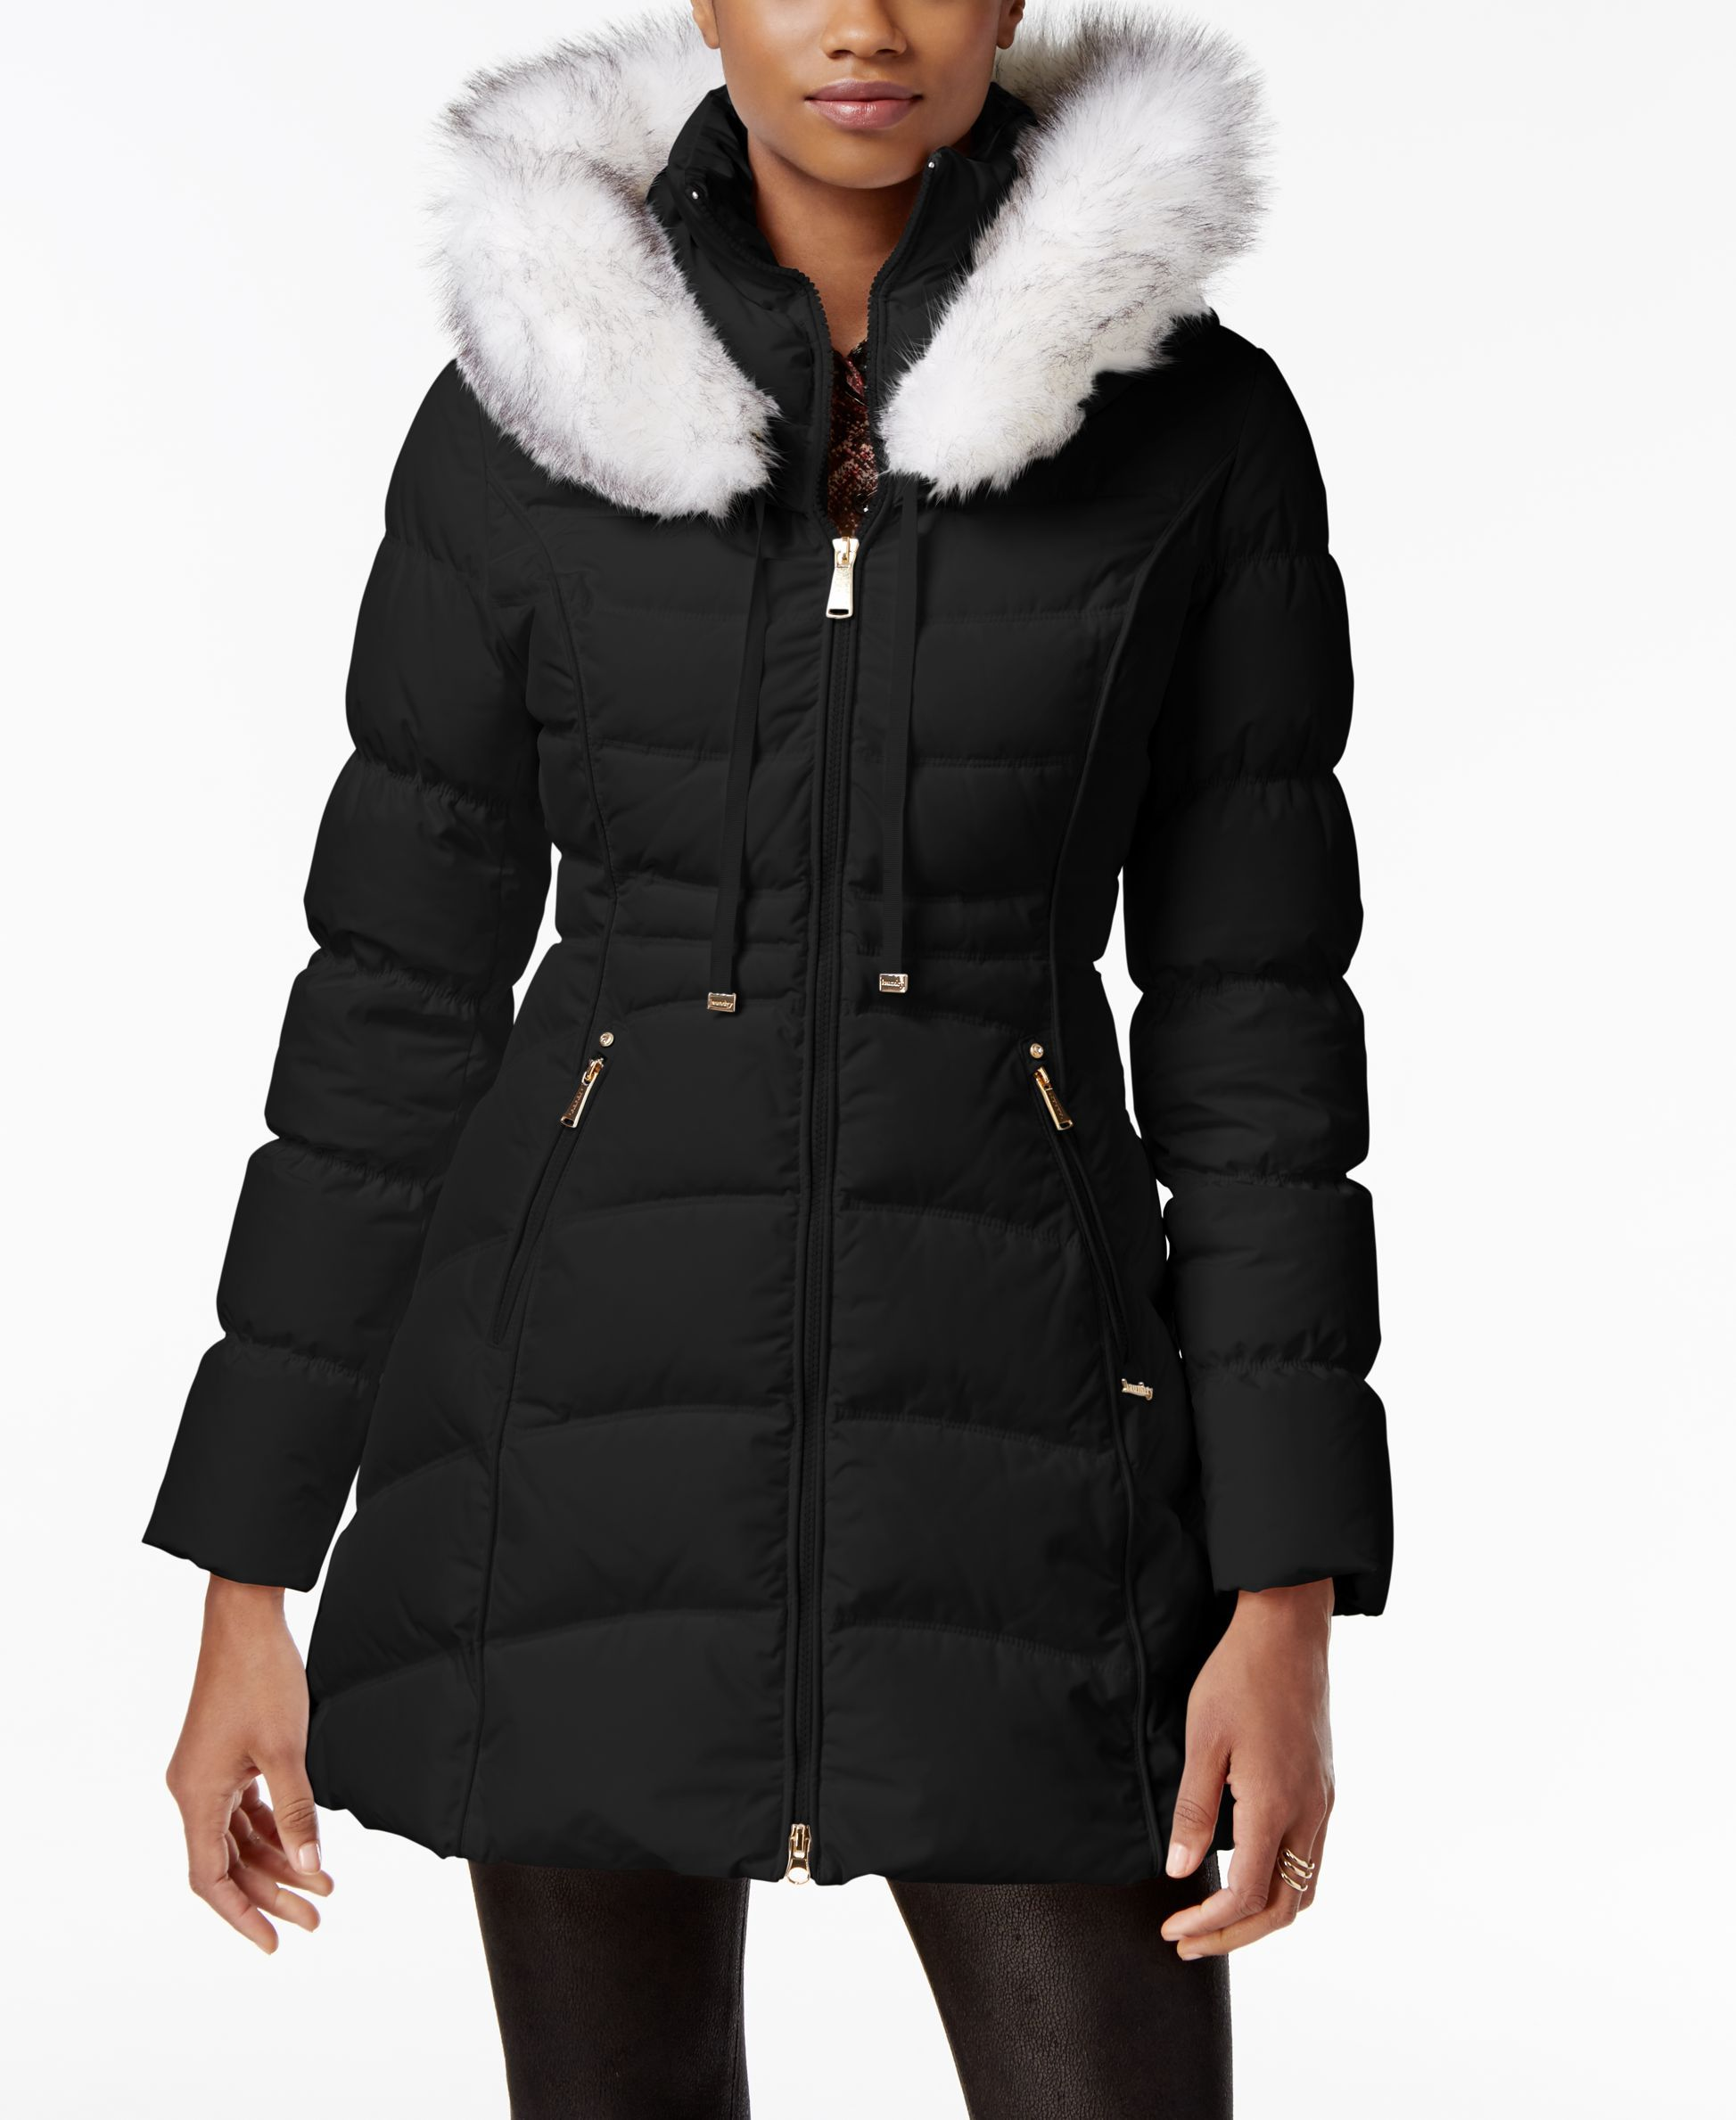 Laundry By Shelli Segal Faux Fur Trim Down Puffer Coat Down